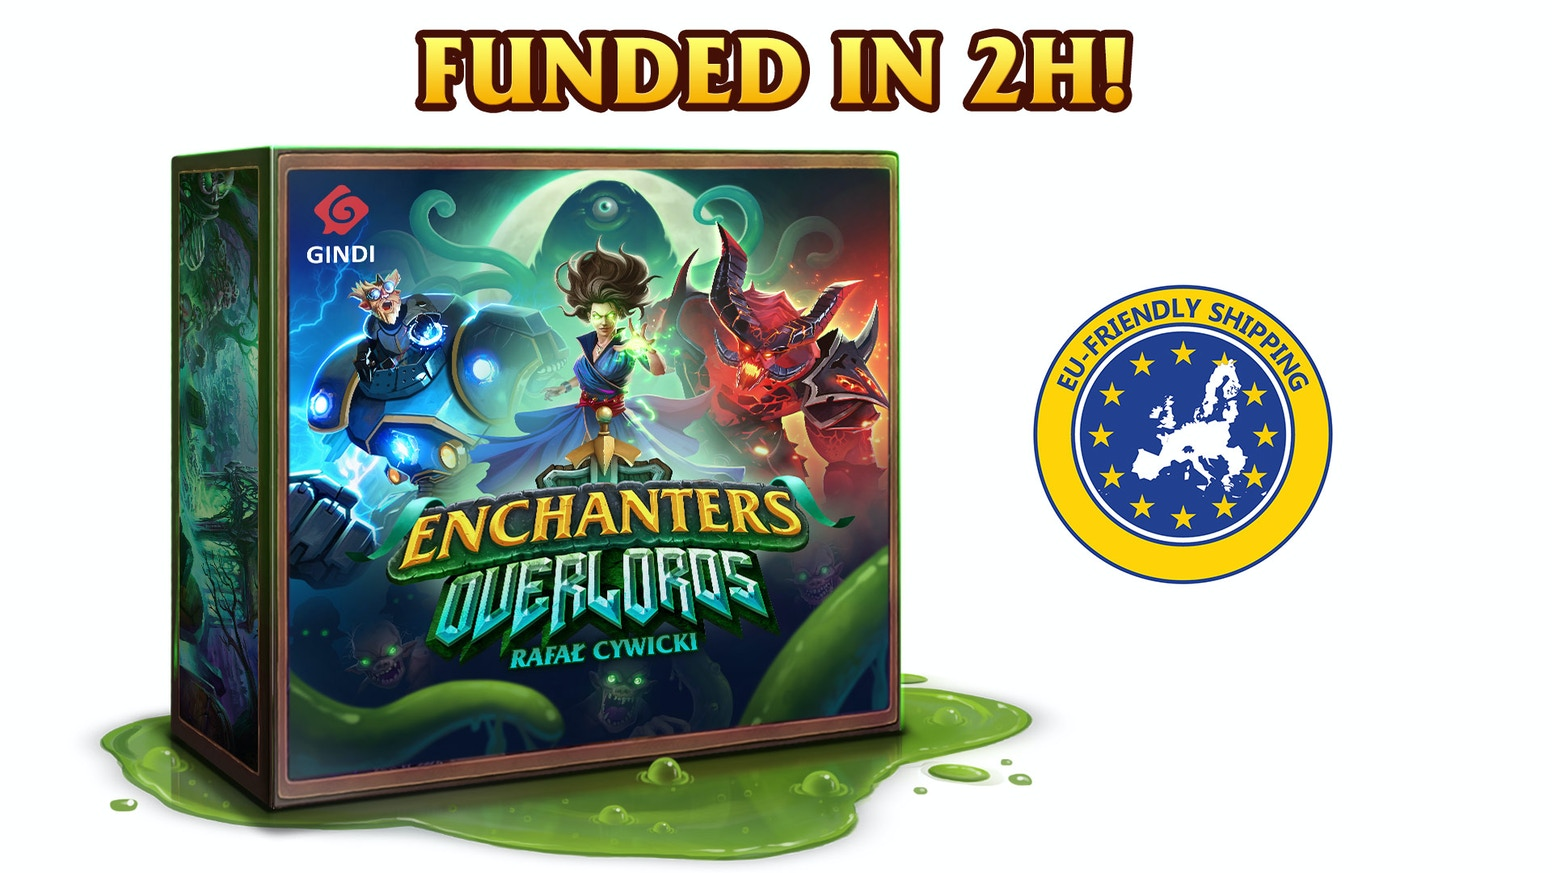 Enchanters: Overlords by Gindi — Kickstarter